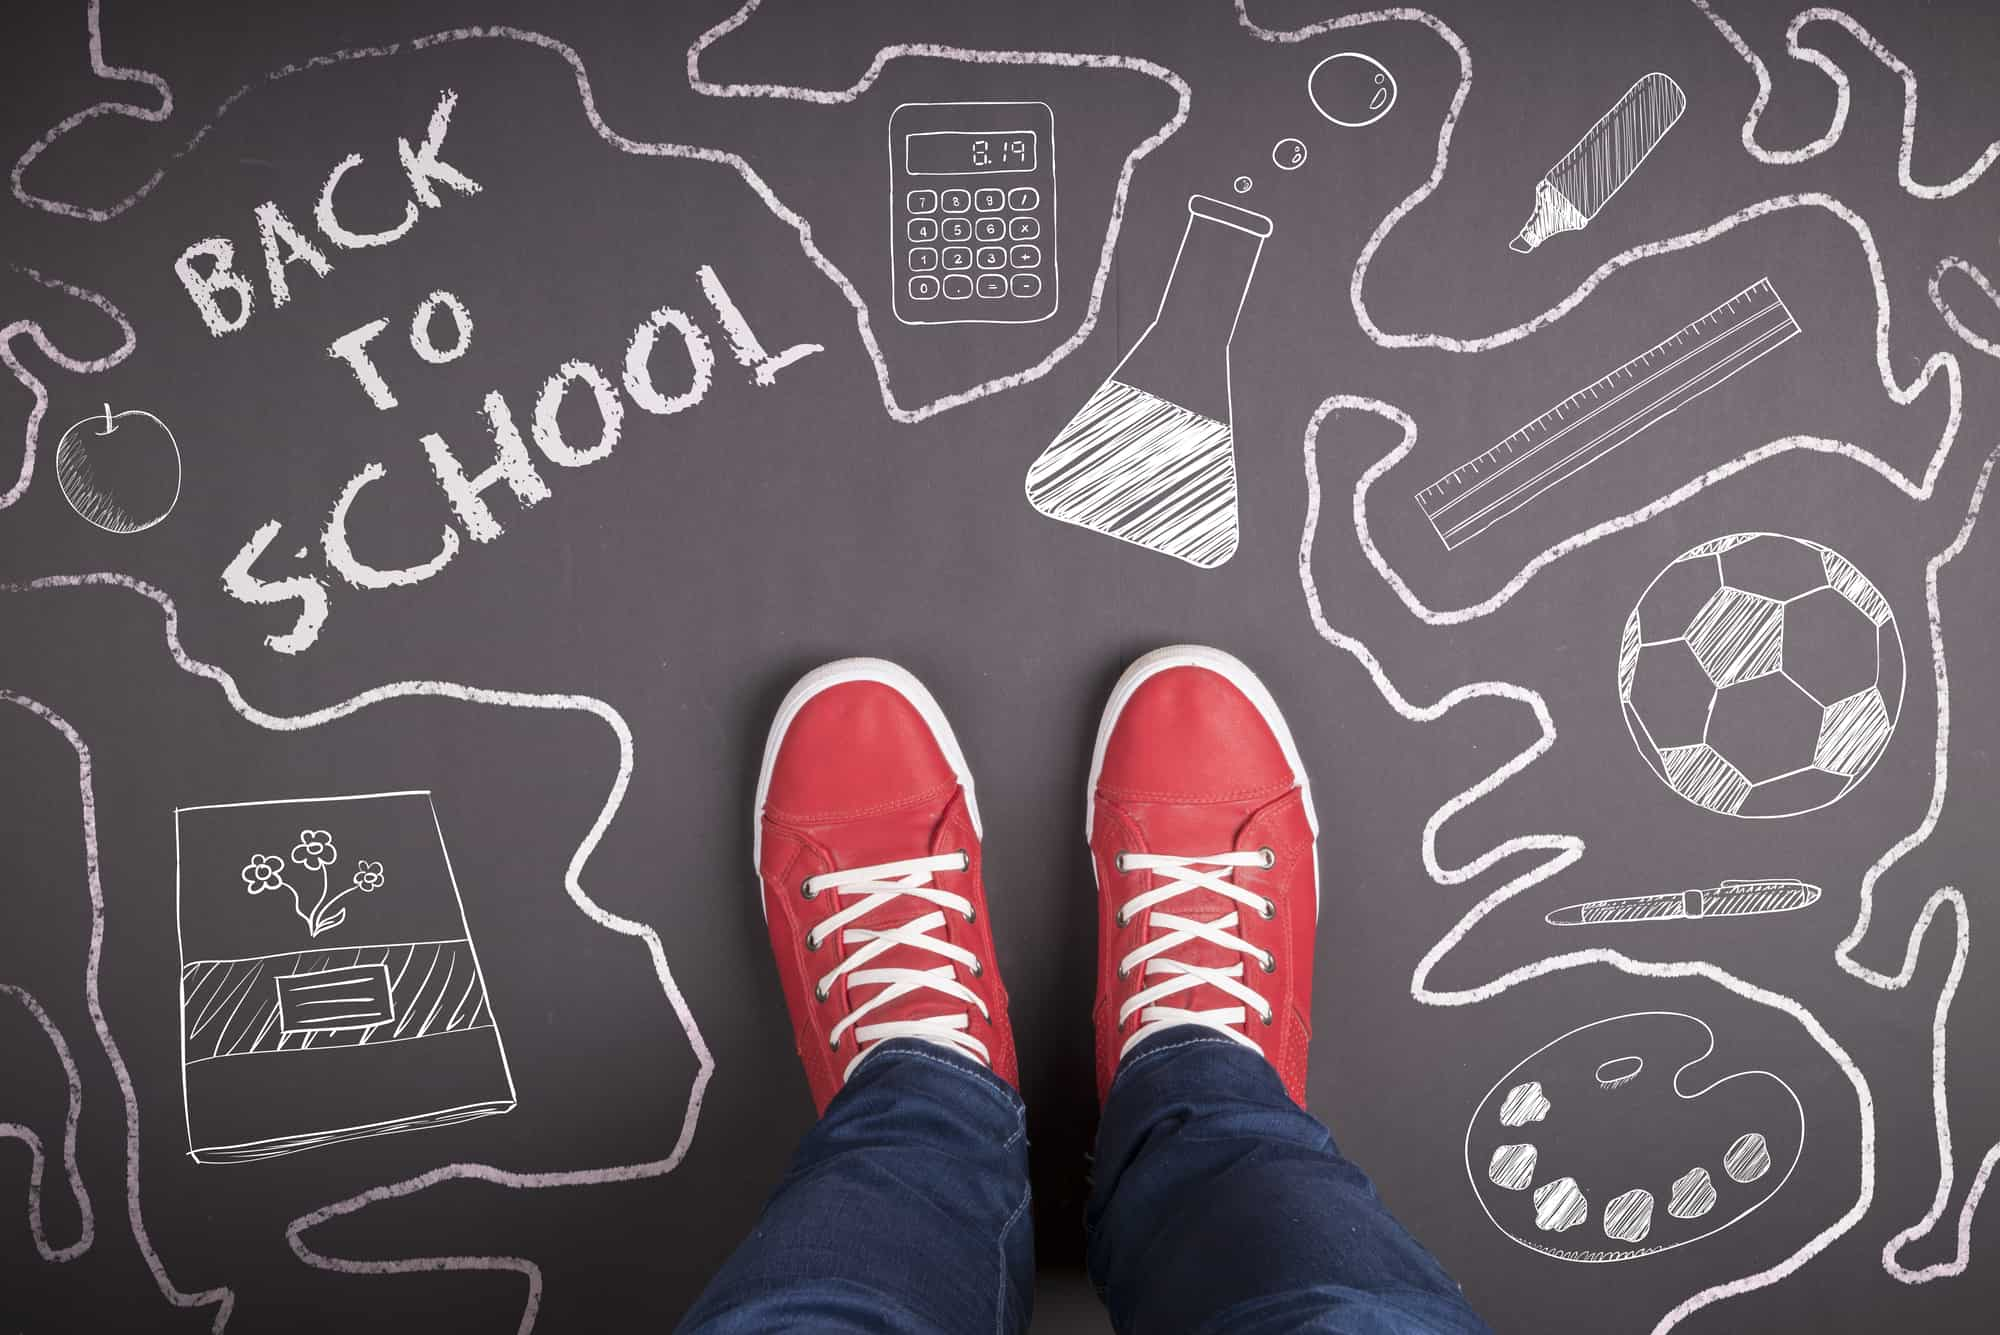 red shoes with white laces on chalkboard saying back to school